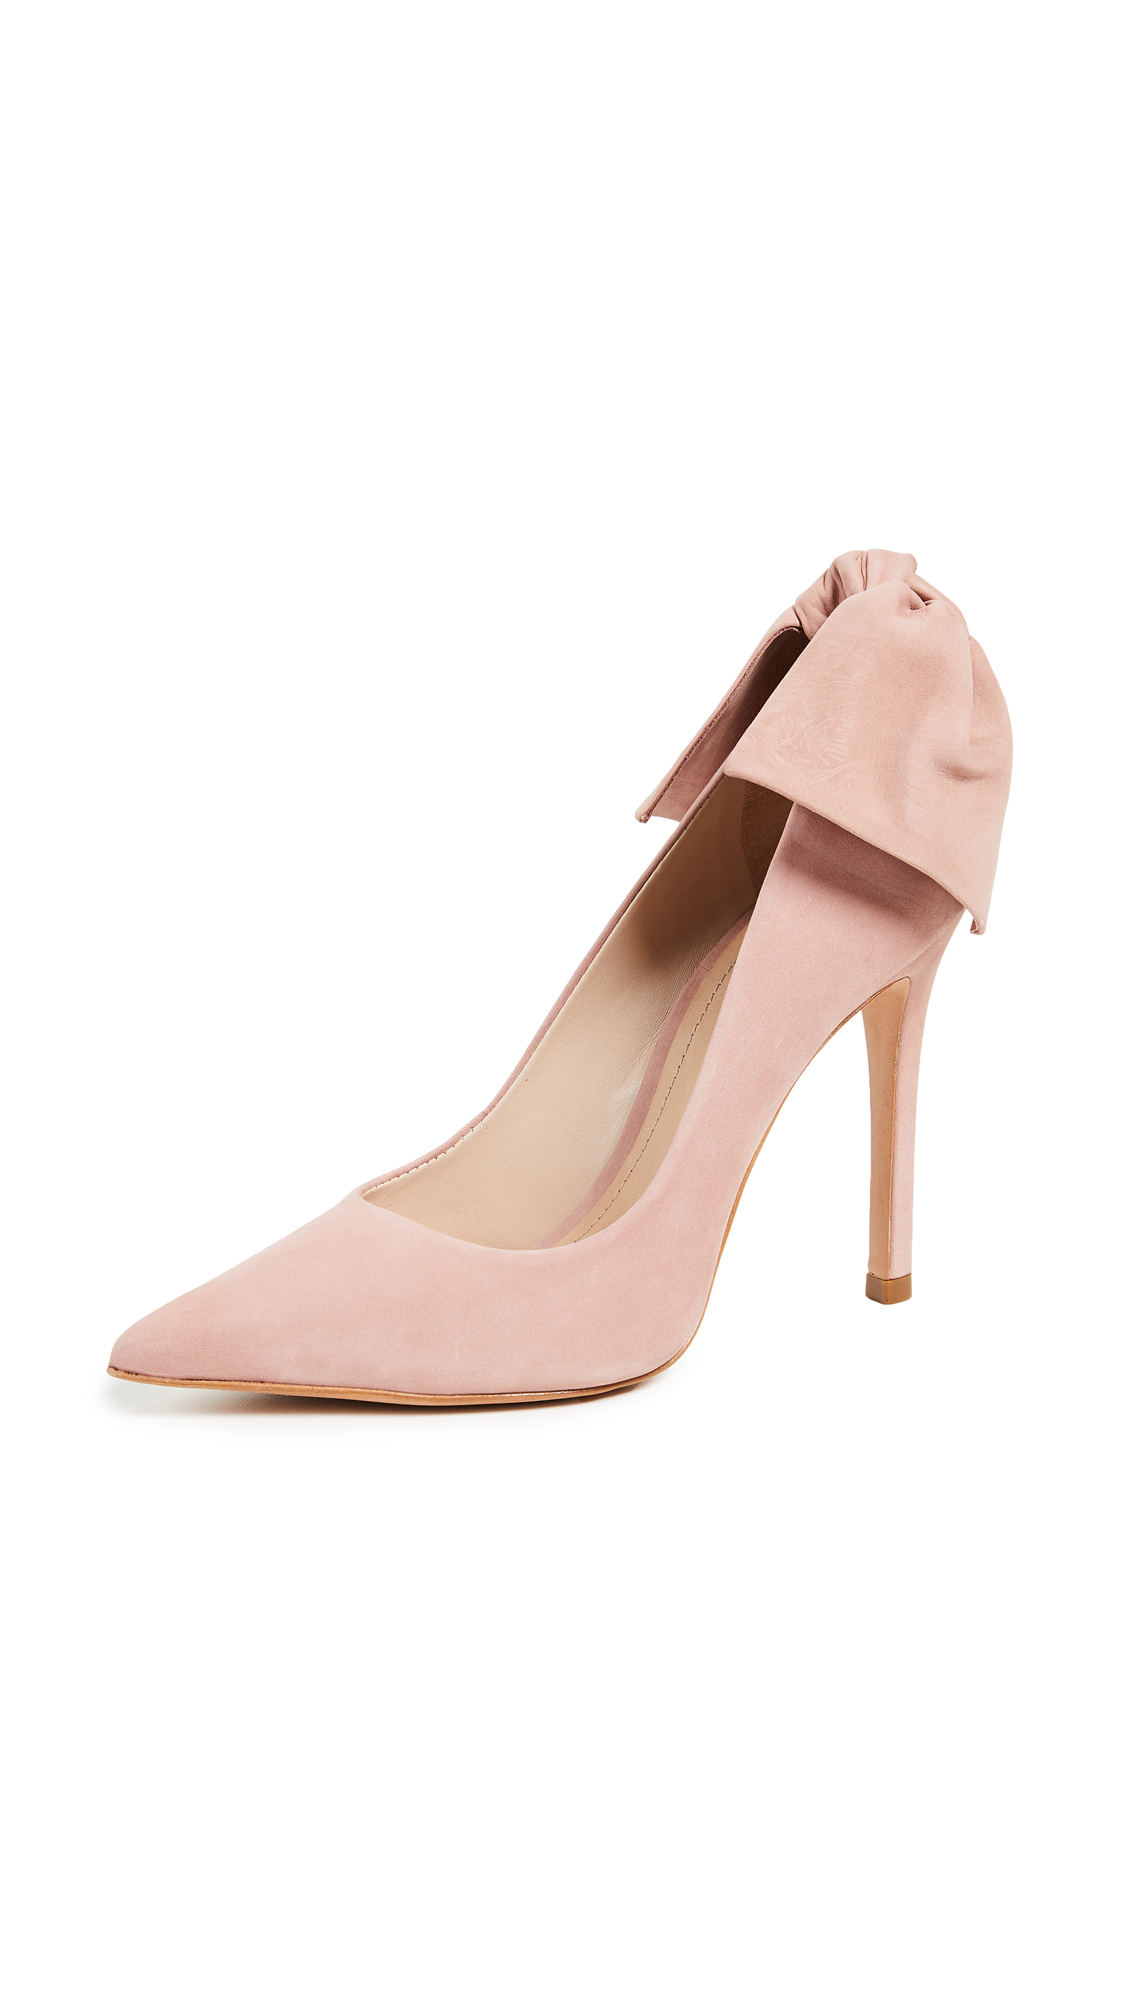 Schutz Blasiana Bow Point Toe Pumps - Poppy Rose